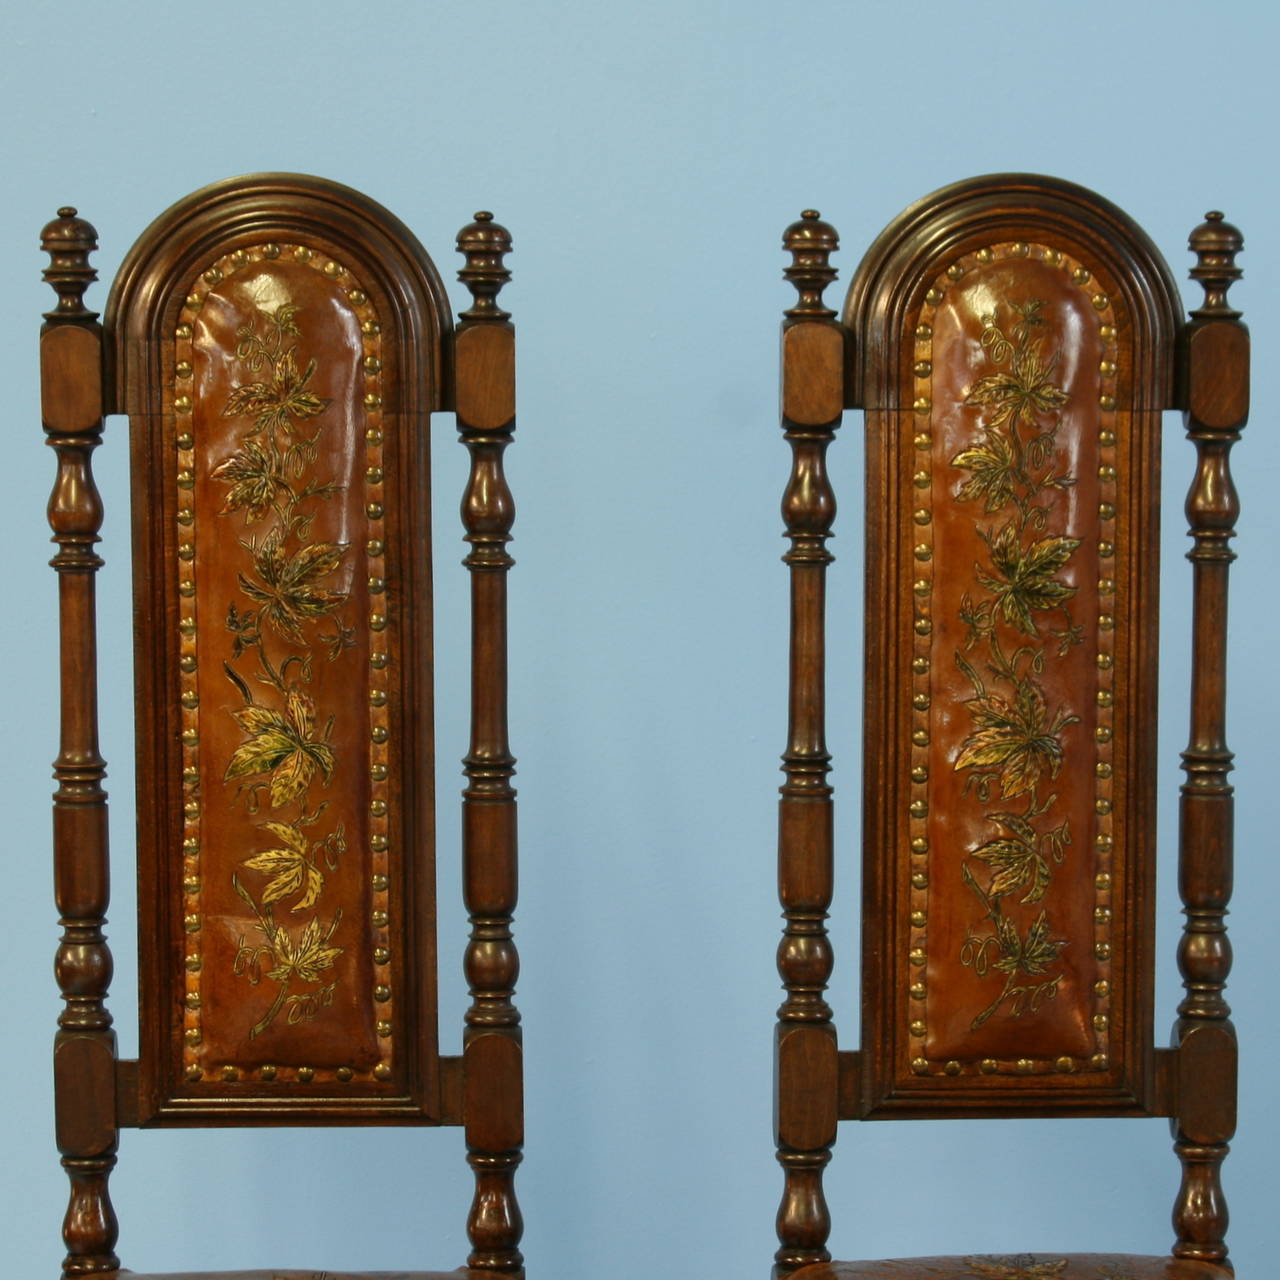 High back antique chairs - Pair Antique Leather Embossed Painted High Back Chairs Denmark Circa 1850 2